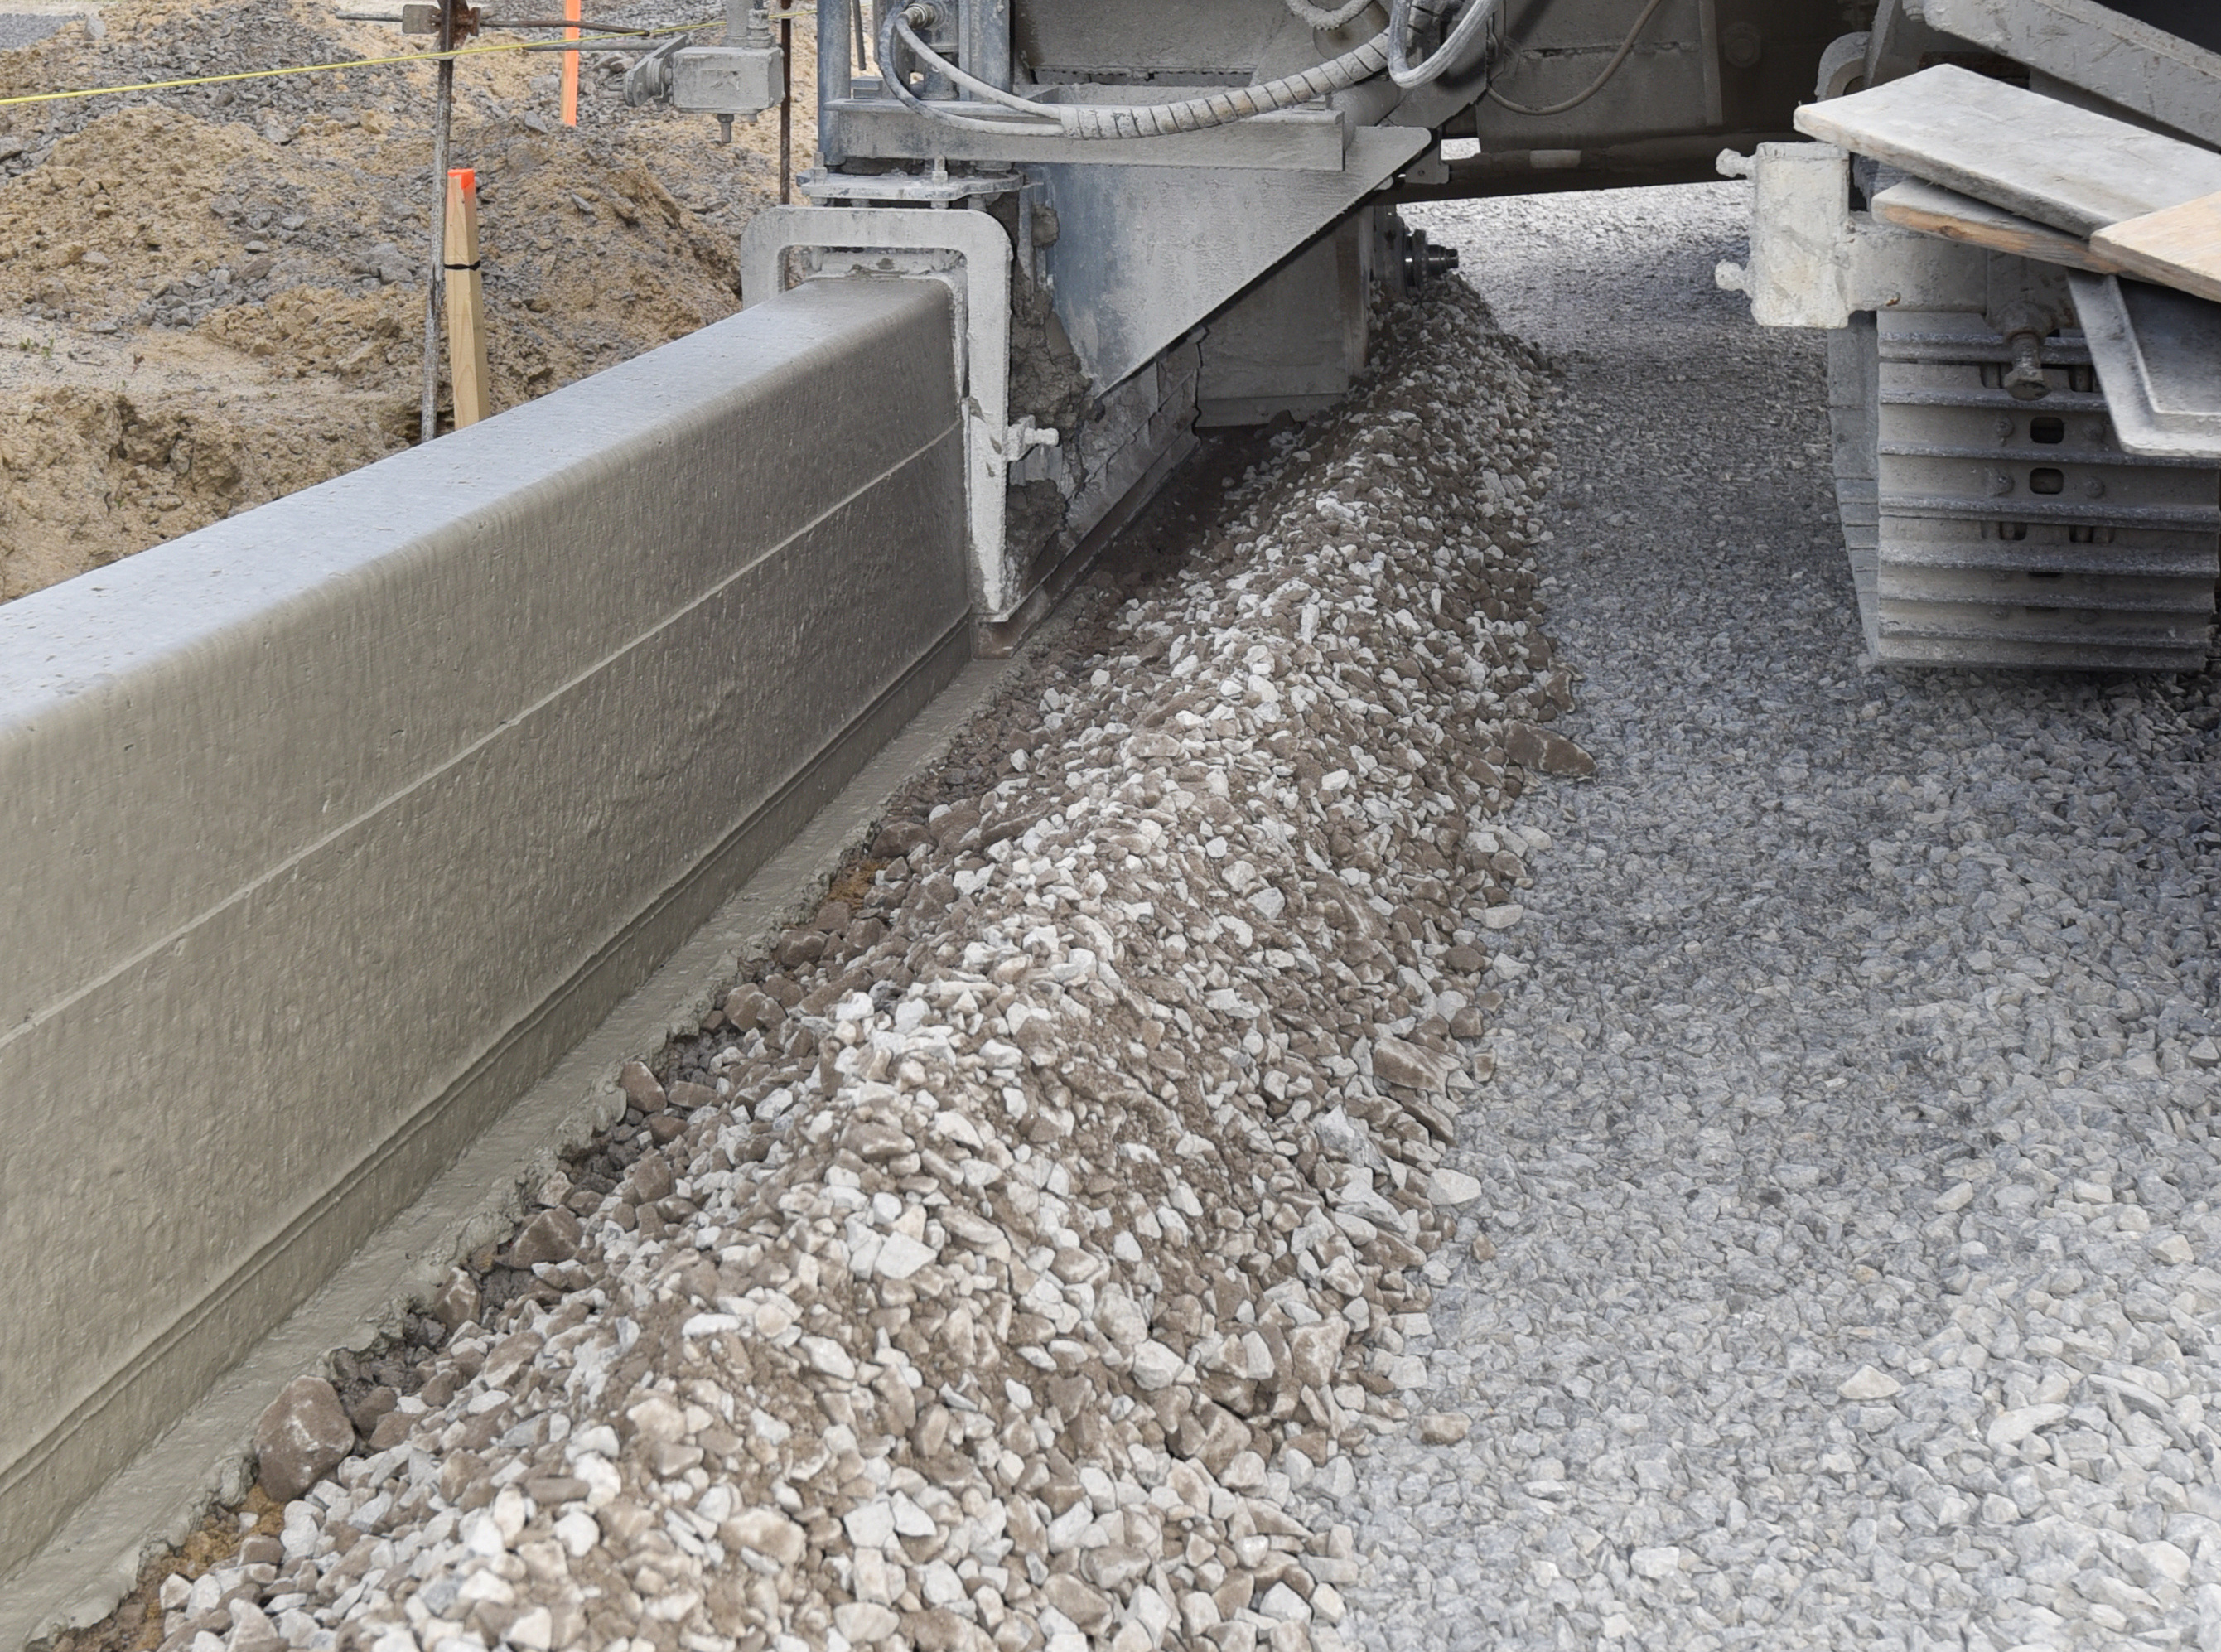 Machine extruding concrete on construction site with concrete fibers